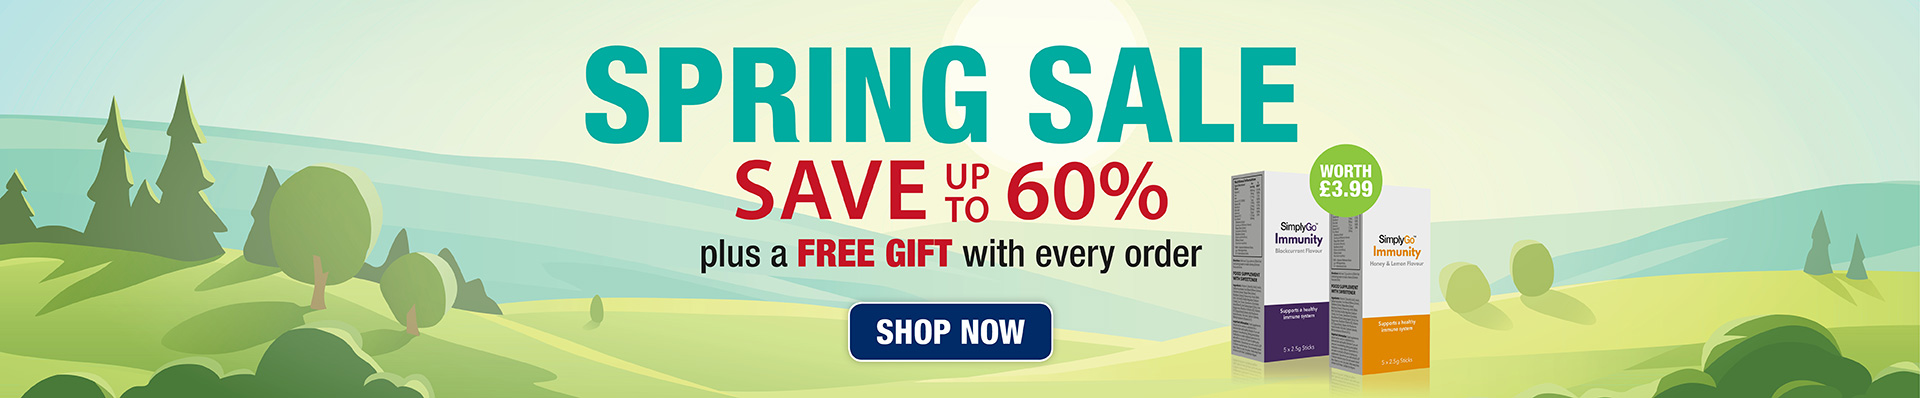 Spring Sale - up to 60% off